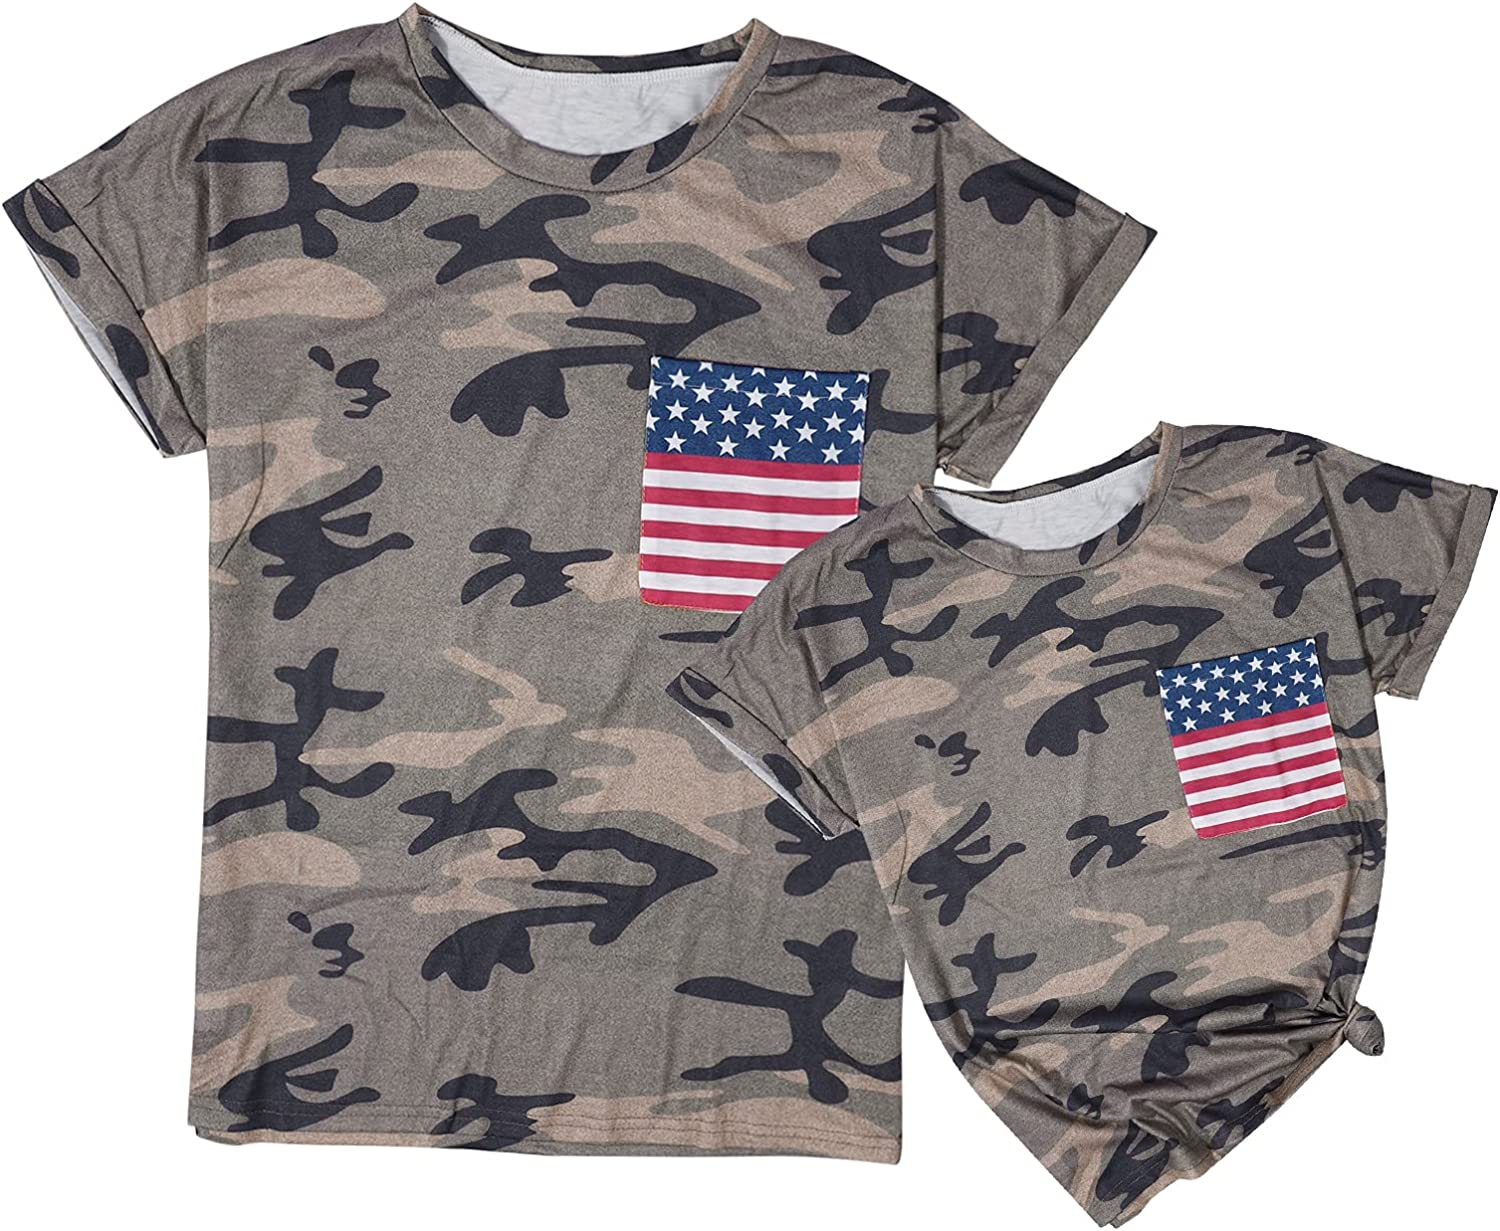 Mommy and Me Matching T-Shirt American Flag Print Shirt Camouflage Family Tee Tops Short Sleeve Shirt